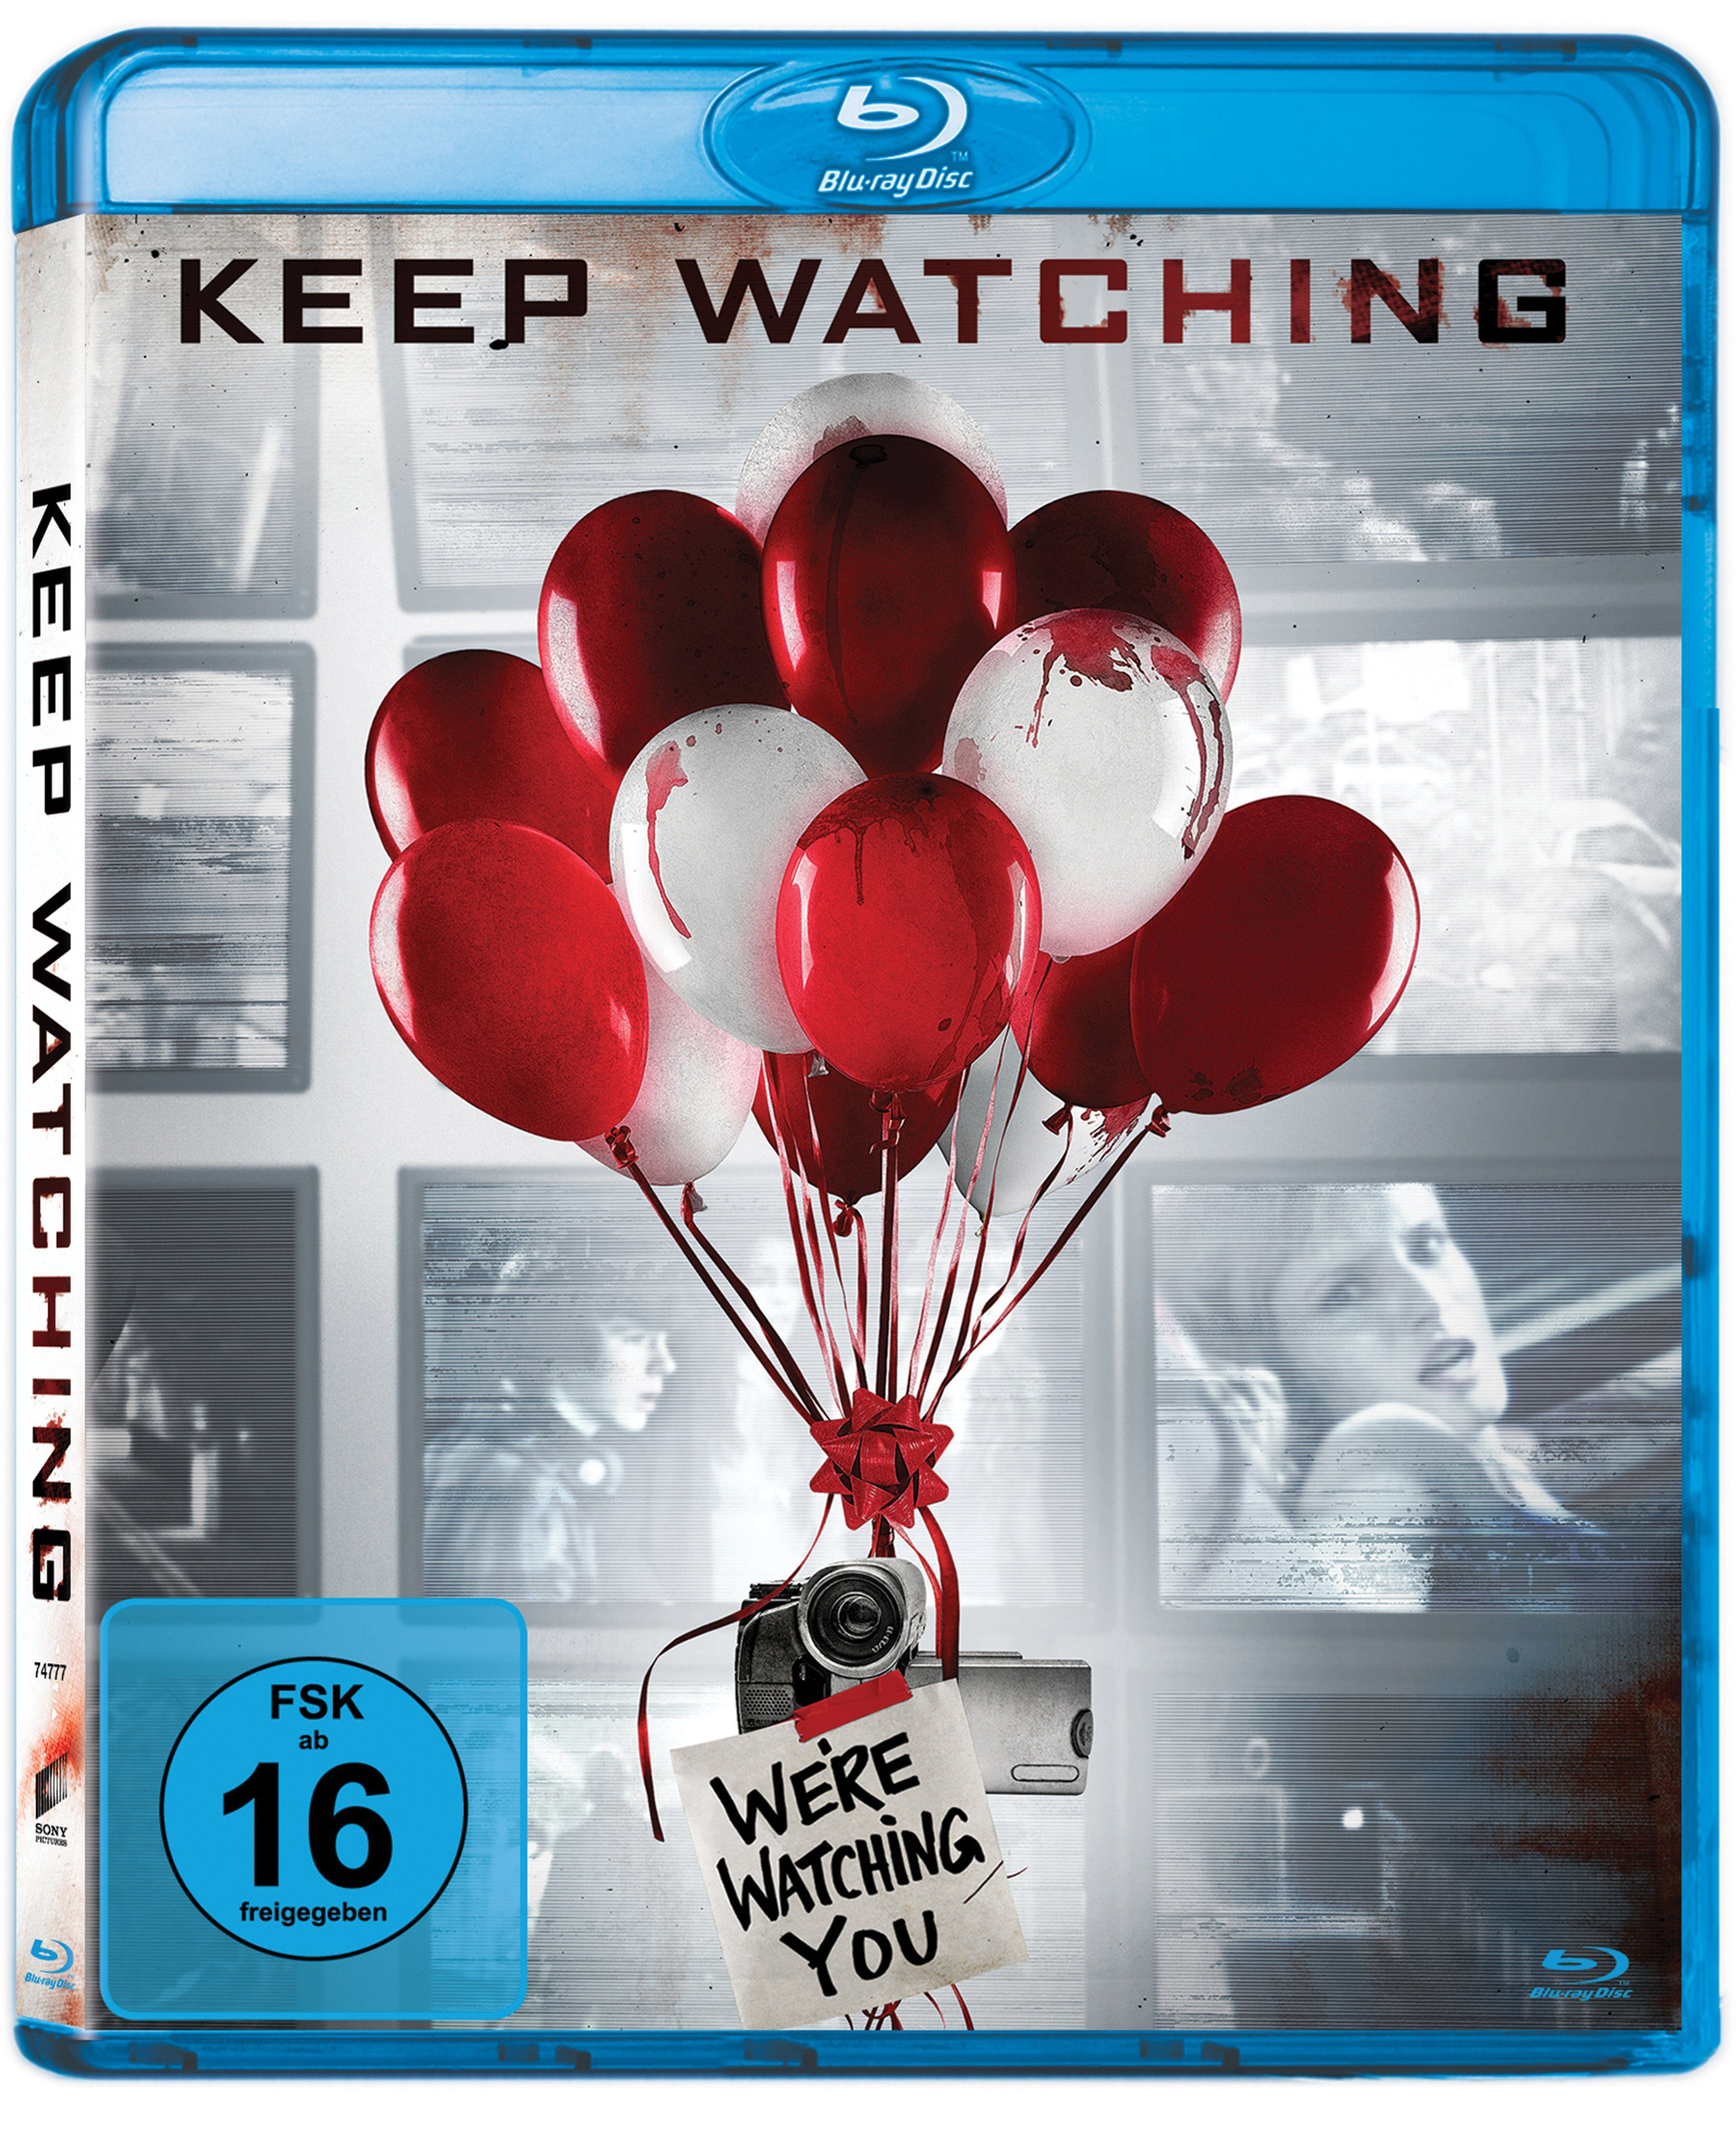 Sony Pictures Blu-Ray »Keep Watching«